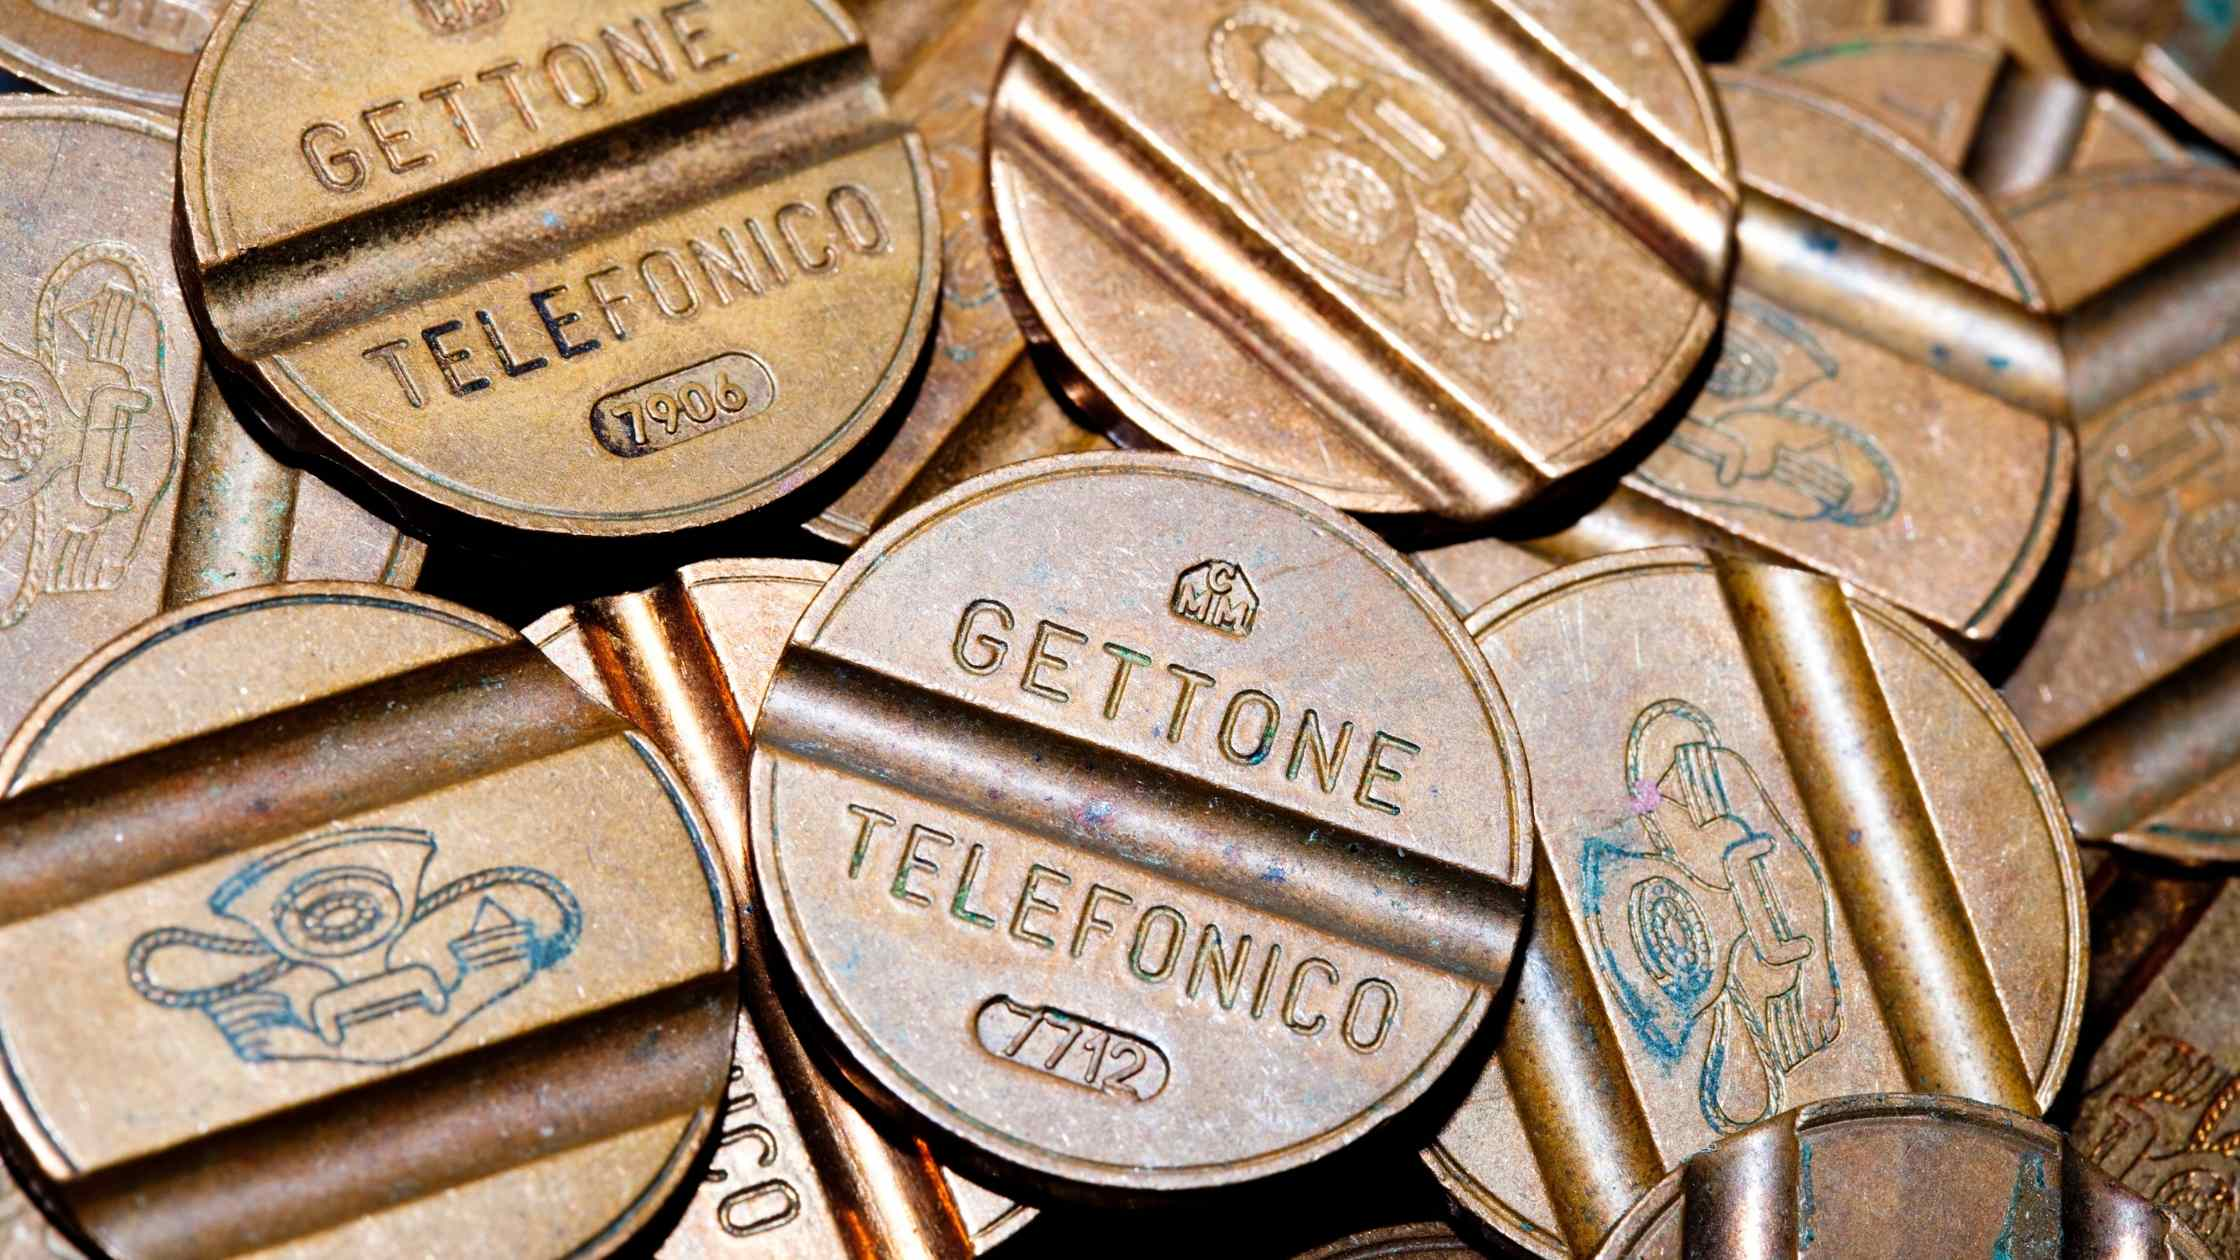 API security concept; pile of phone tokens